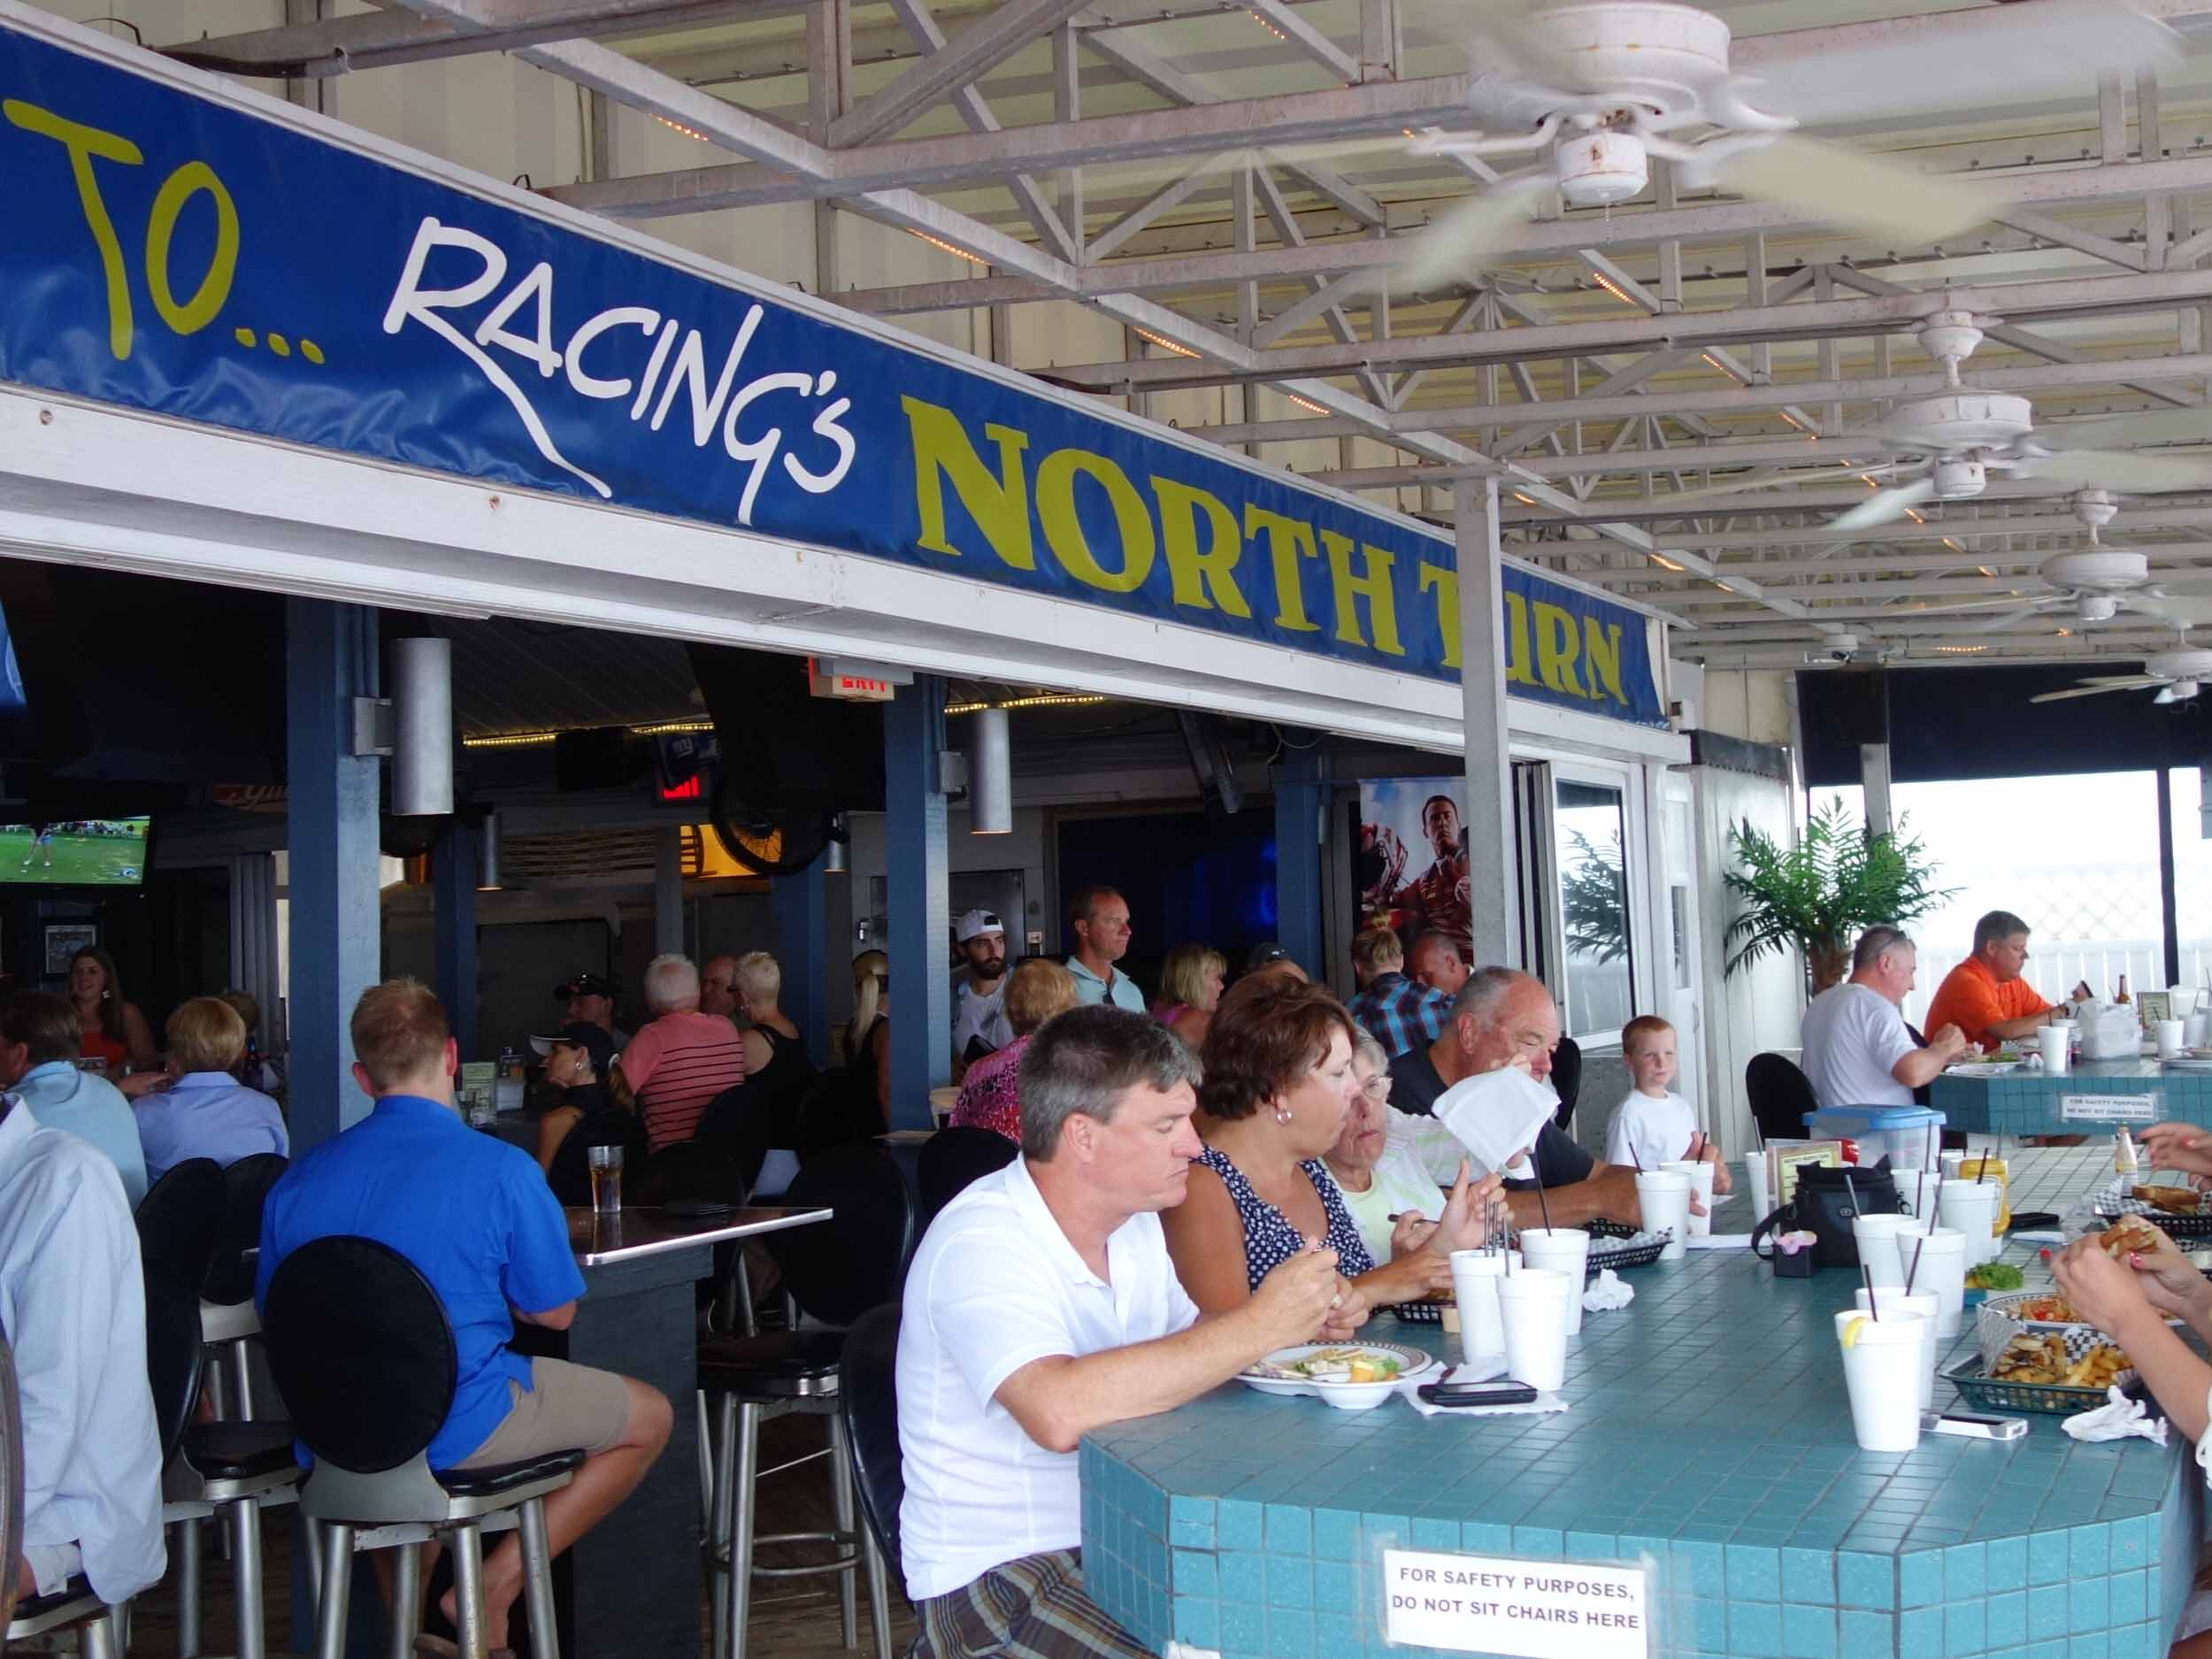 Racing's North Turn Dining Area